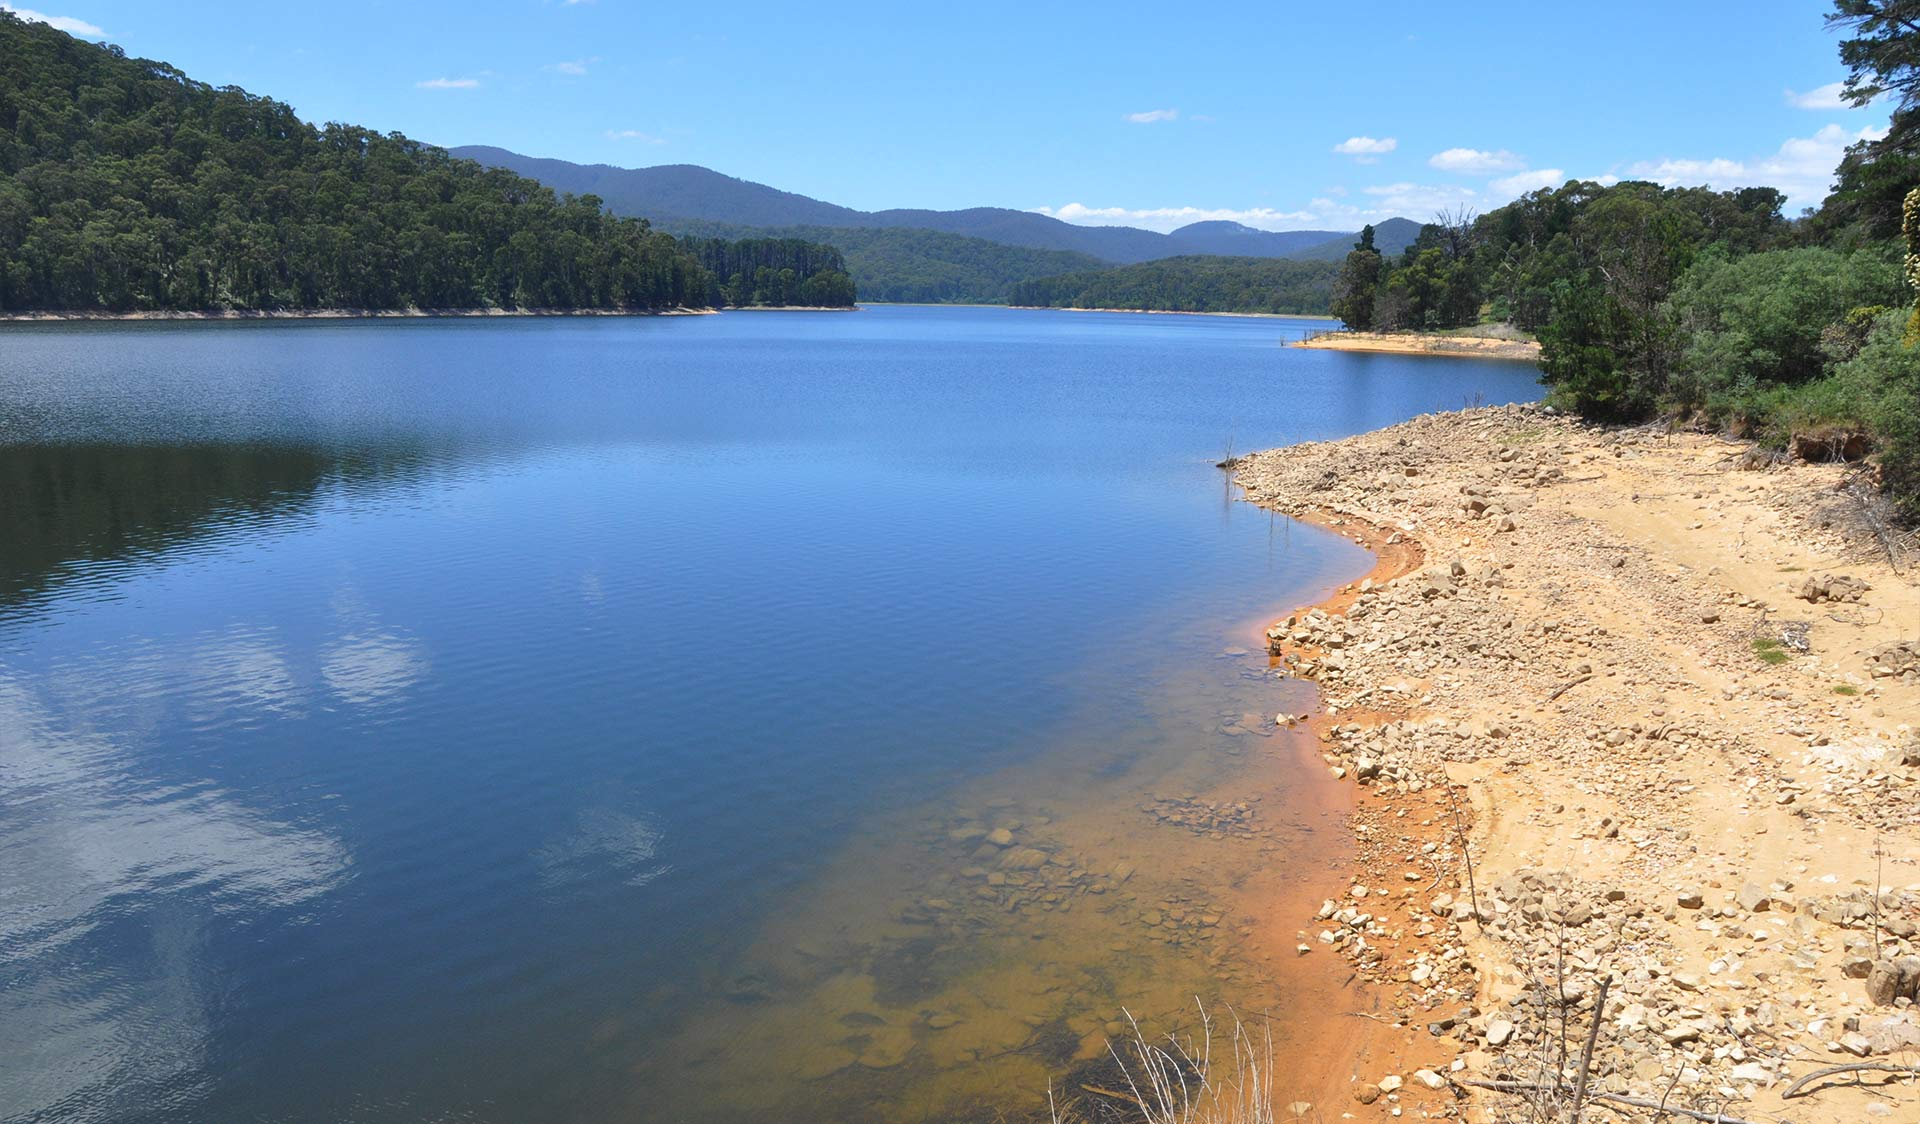 The view from the water's edge at the Maroondah Reservoir.